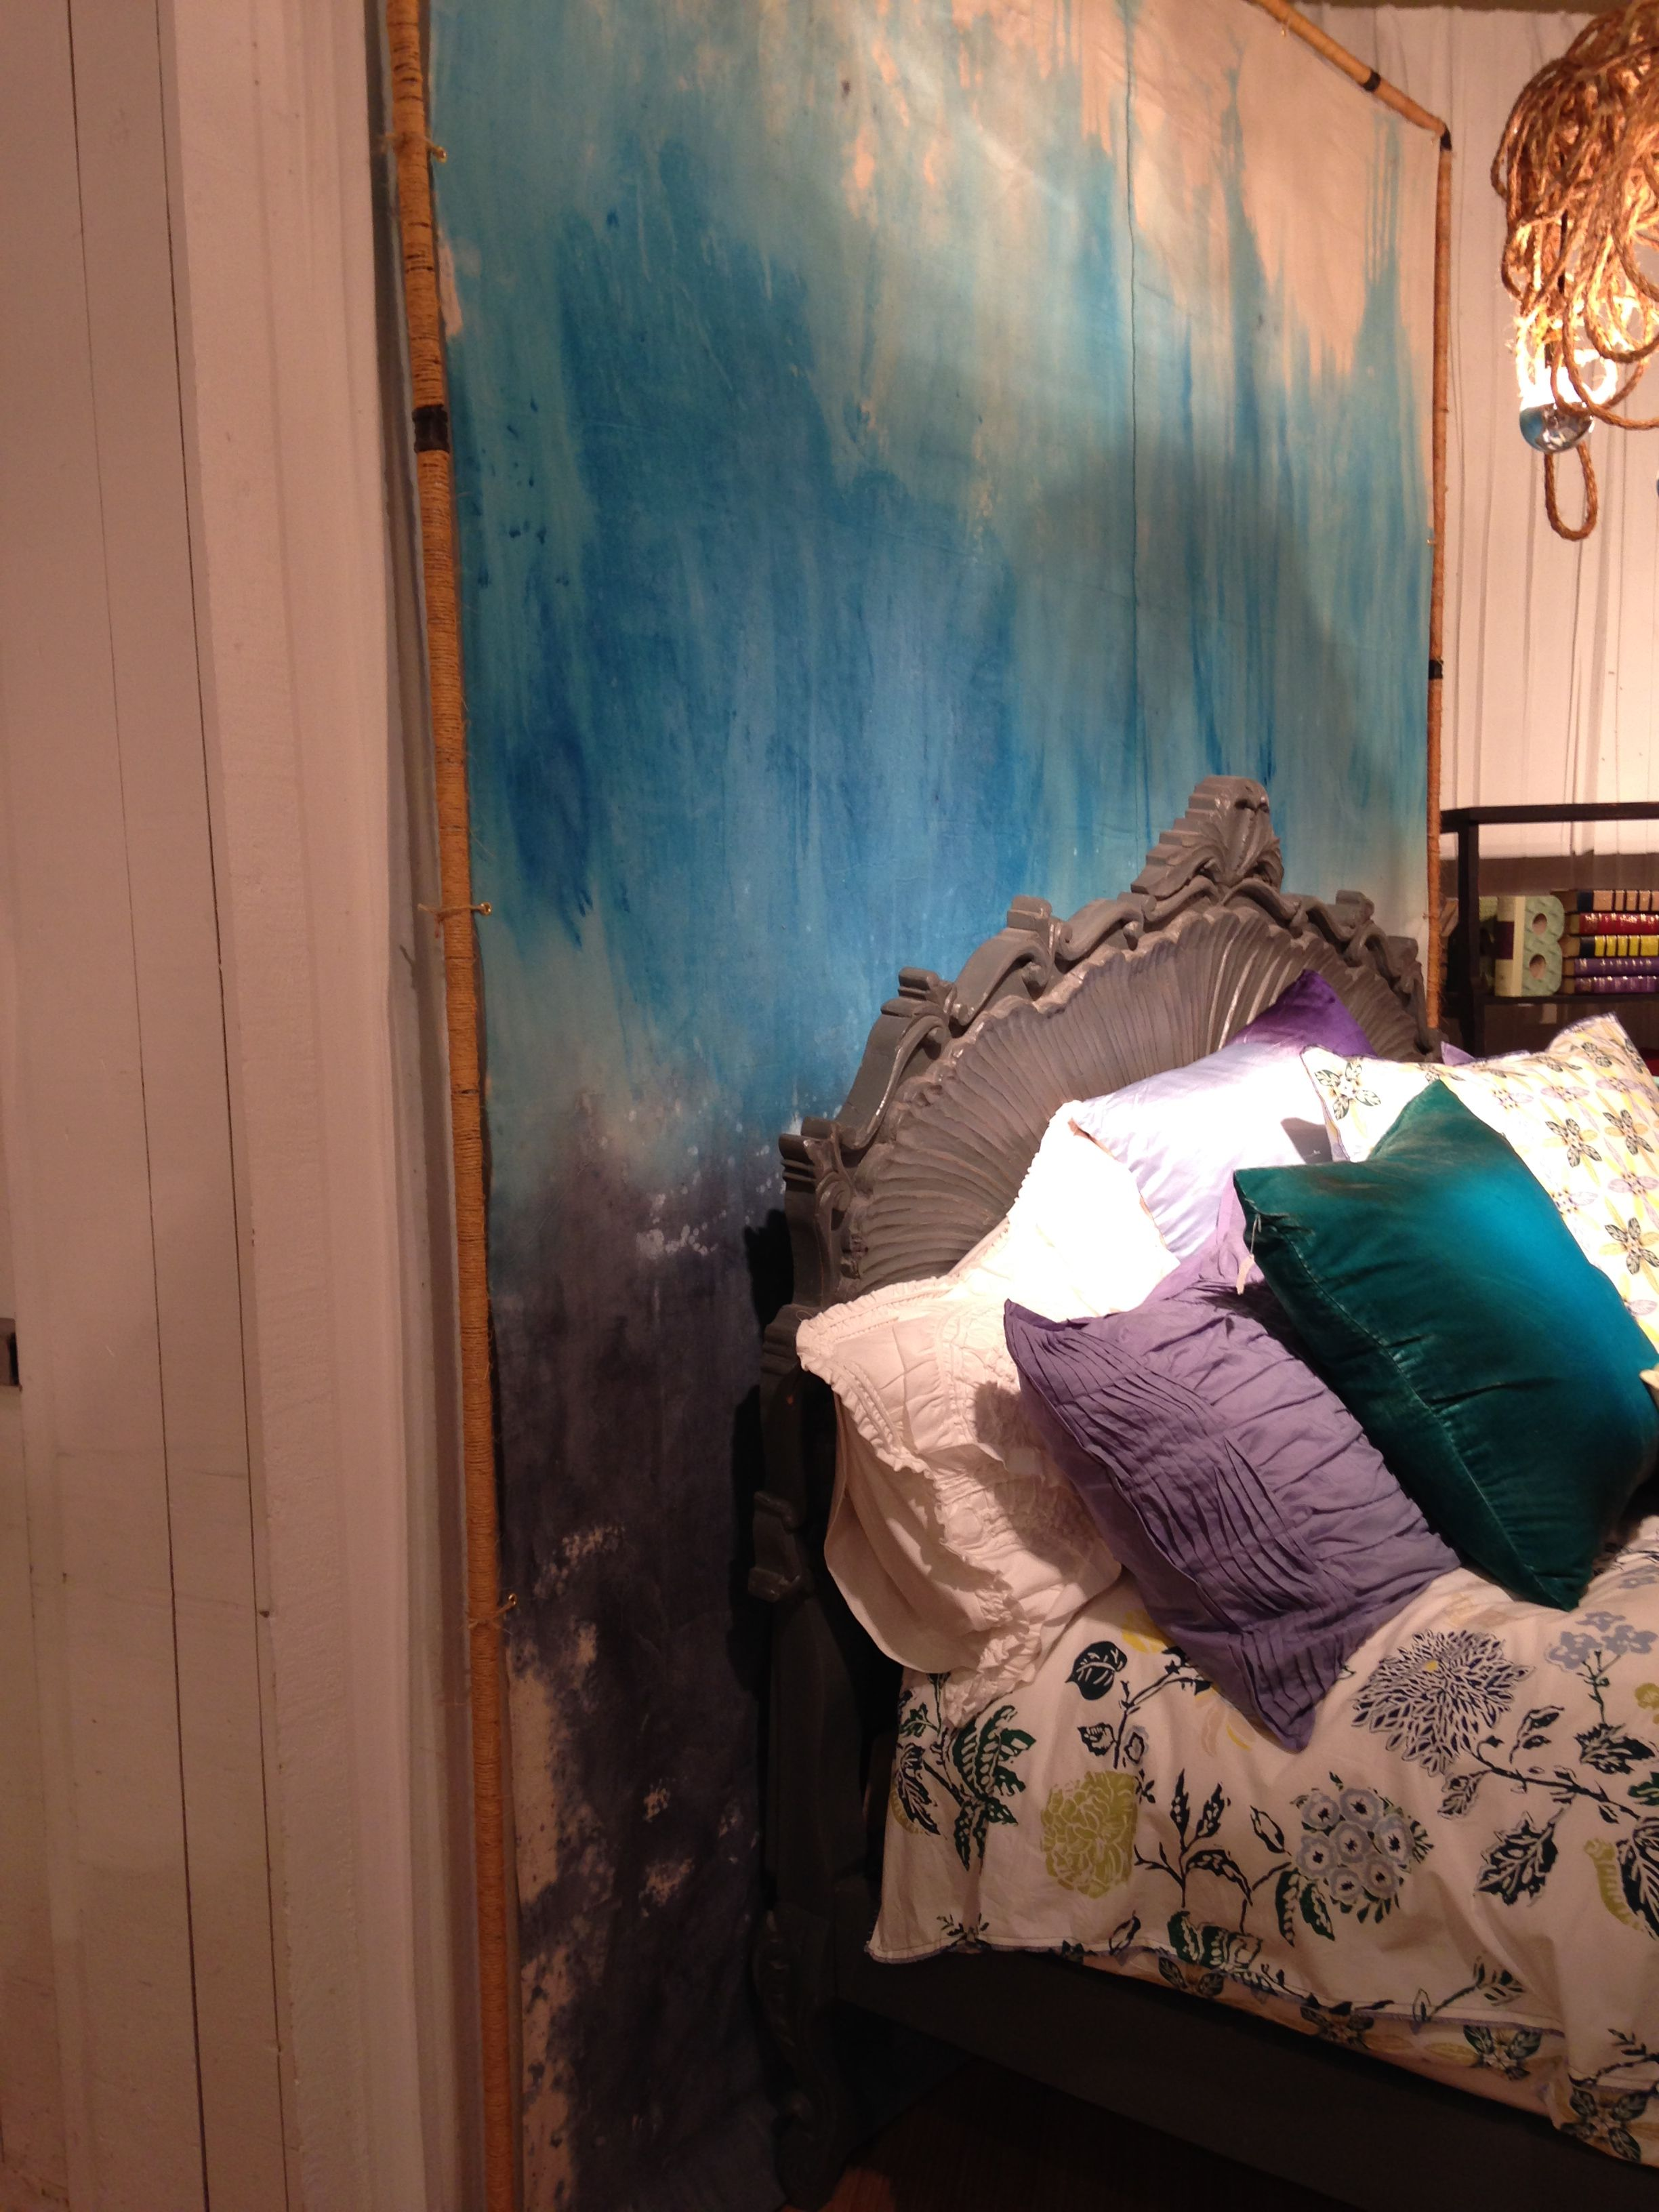 painted canvas drop cloth in hues of turquoise, temporary